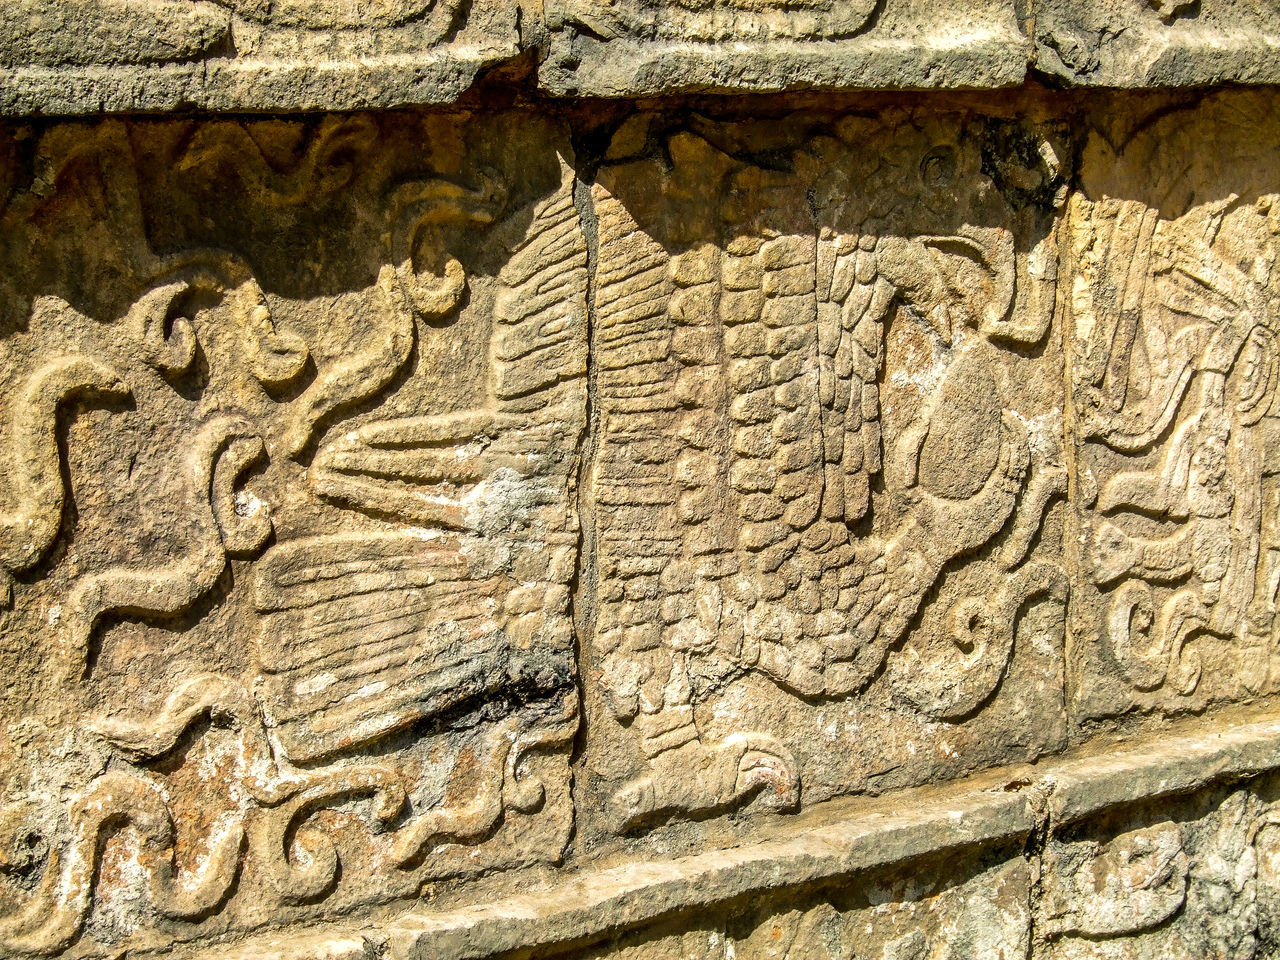 Ancient Ancient Civilization Archaeological Sites Archaeology Chichen Itza Close-up Glyph History Kukulkan Mayan Mayan Ruins Mayan Wonders Quetzal Stone Material Textured  The Past Weathered Yucatan Mexico Yucatan Peninsula Yúcatan